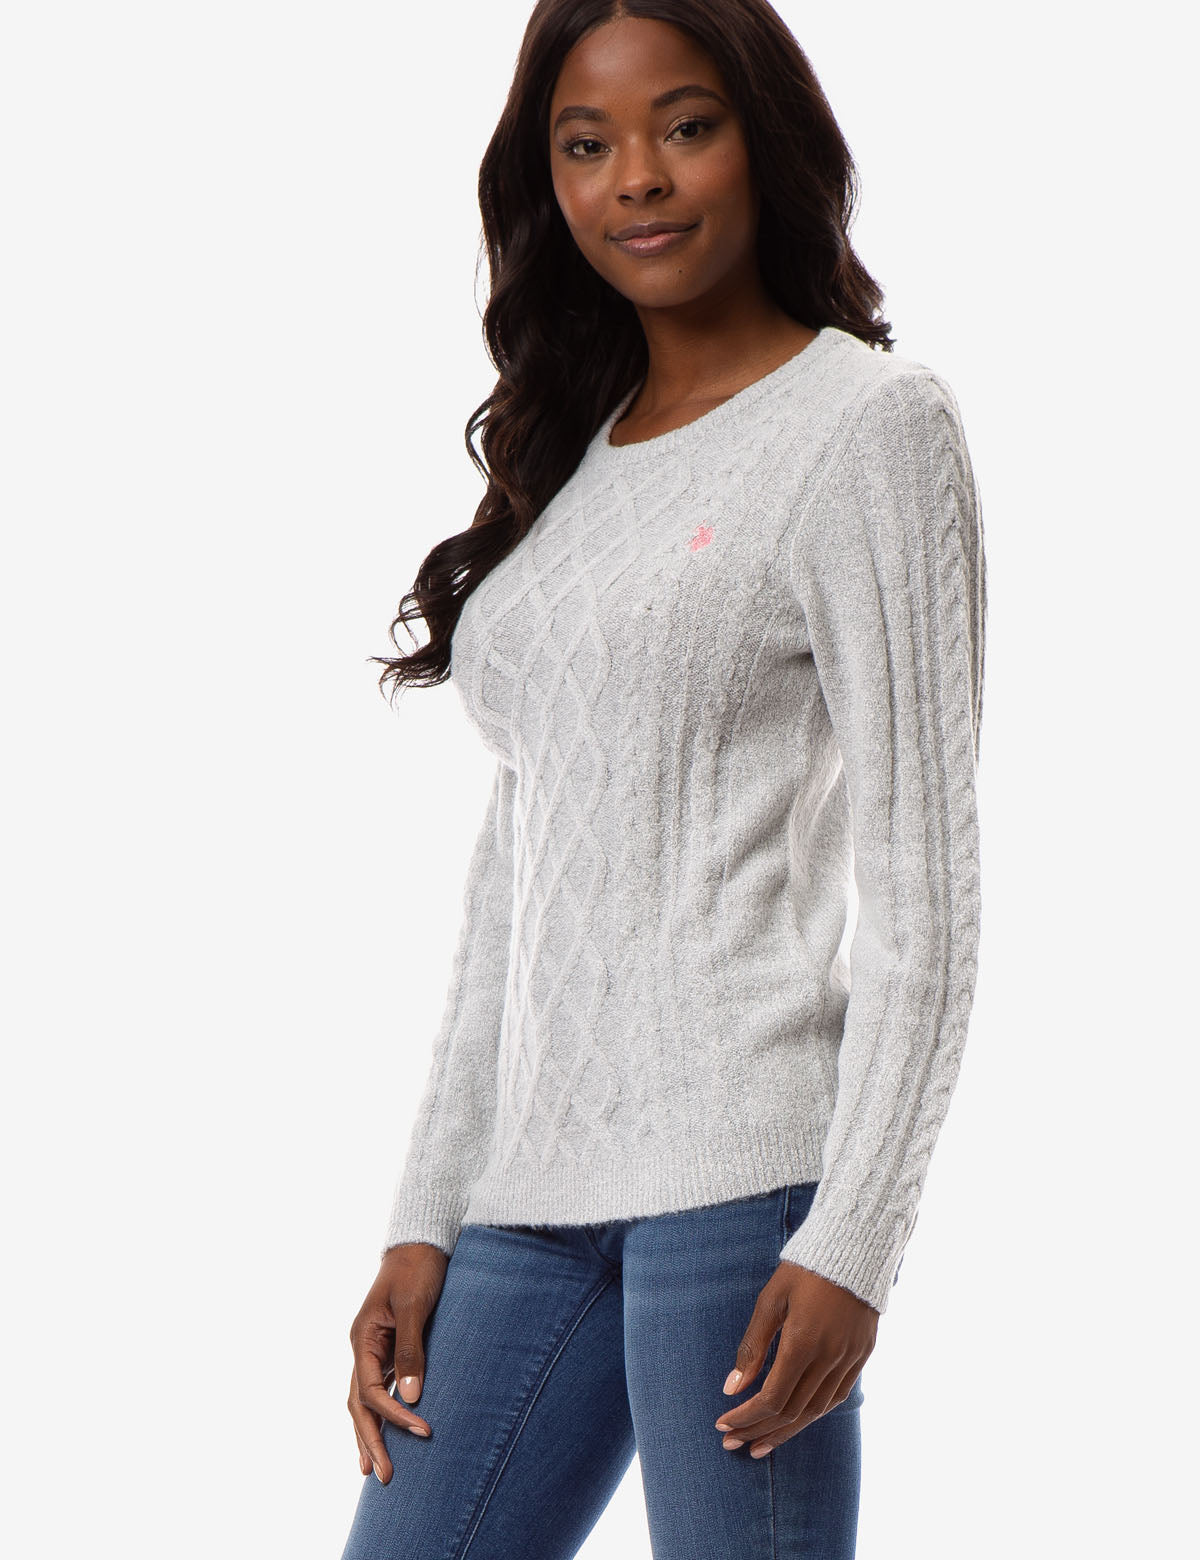 MIXED CABLE CREW NECK SWEATER - U.S. Polo Assn.